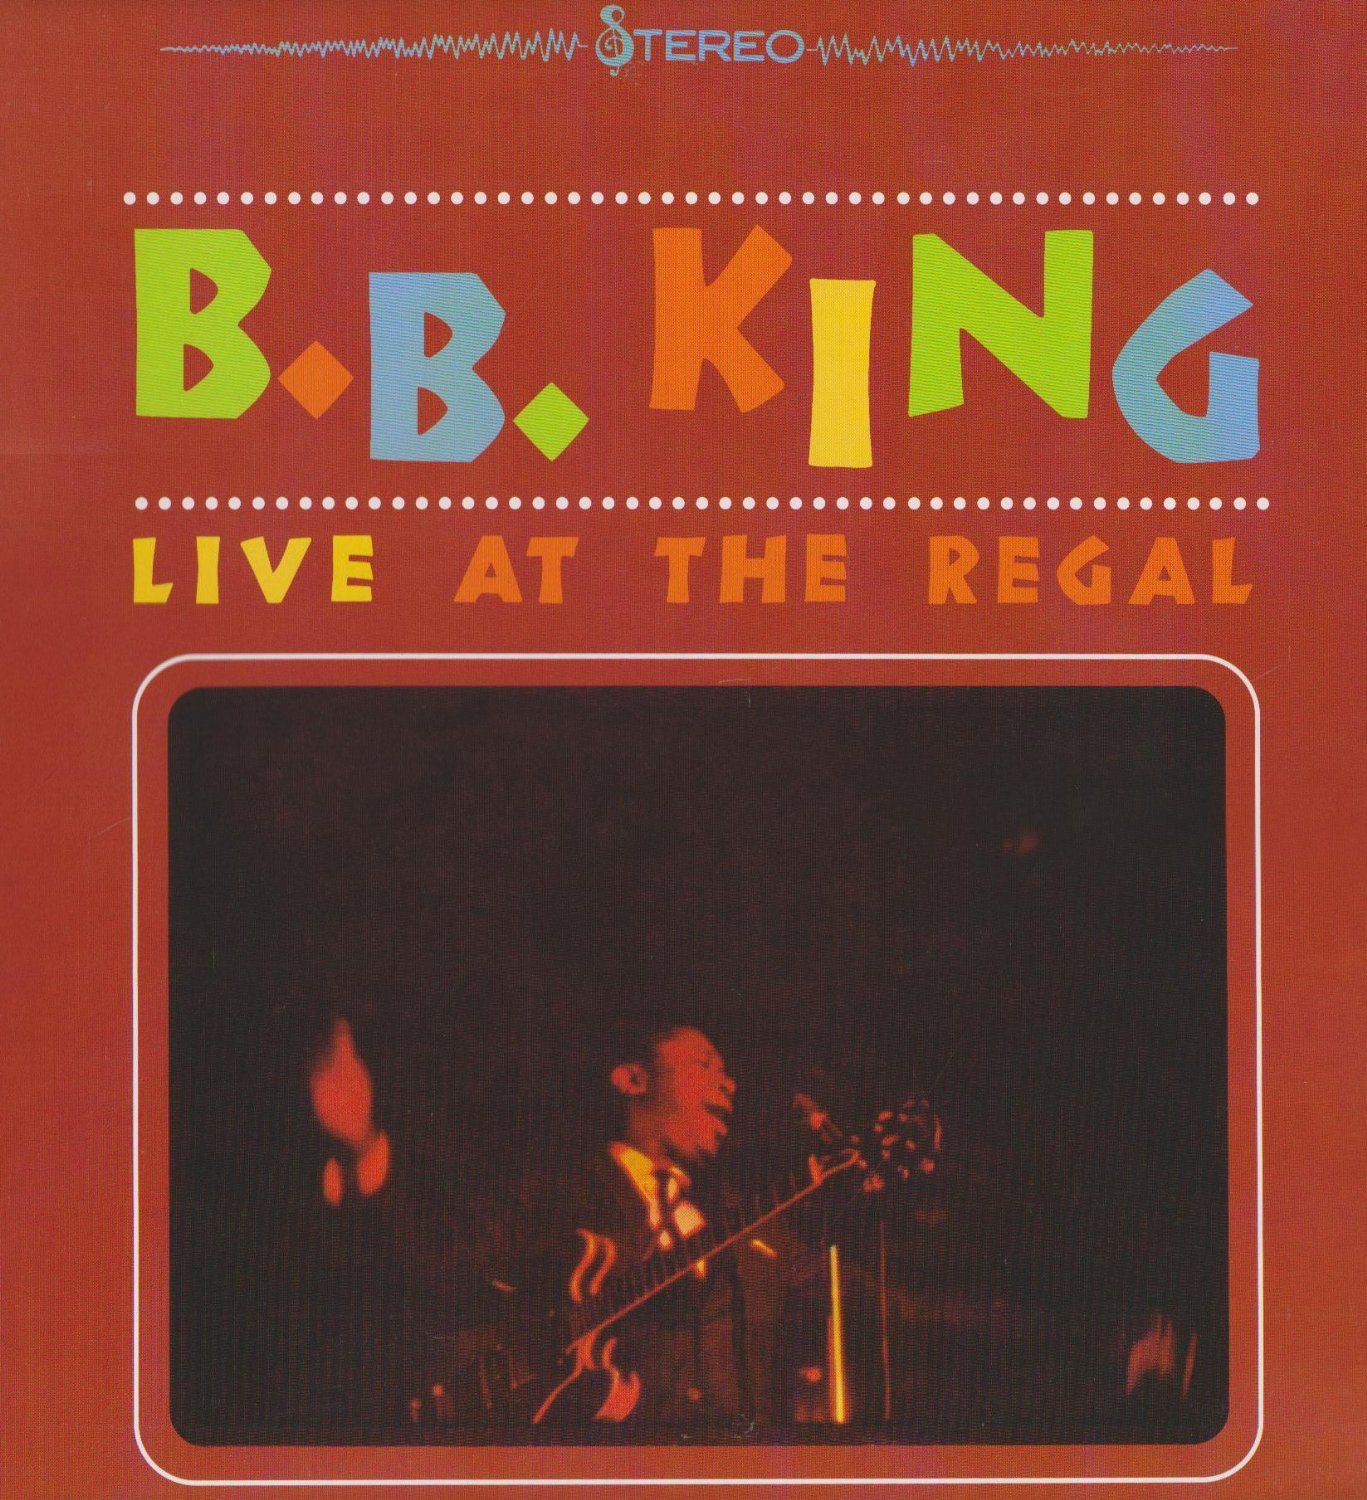 Live at the-Regal-B. B. King